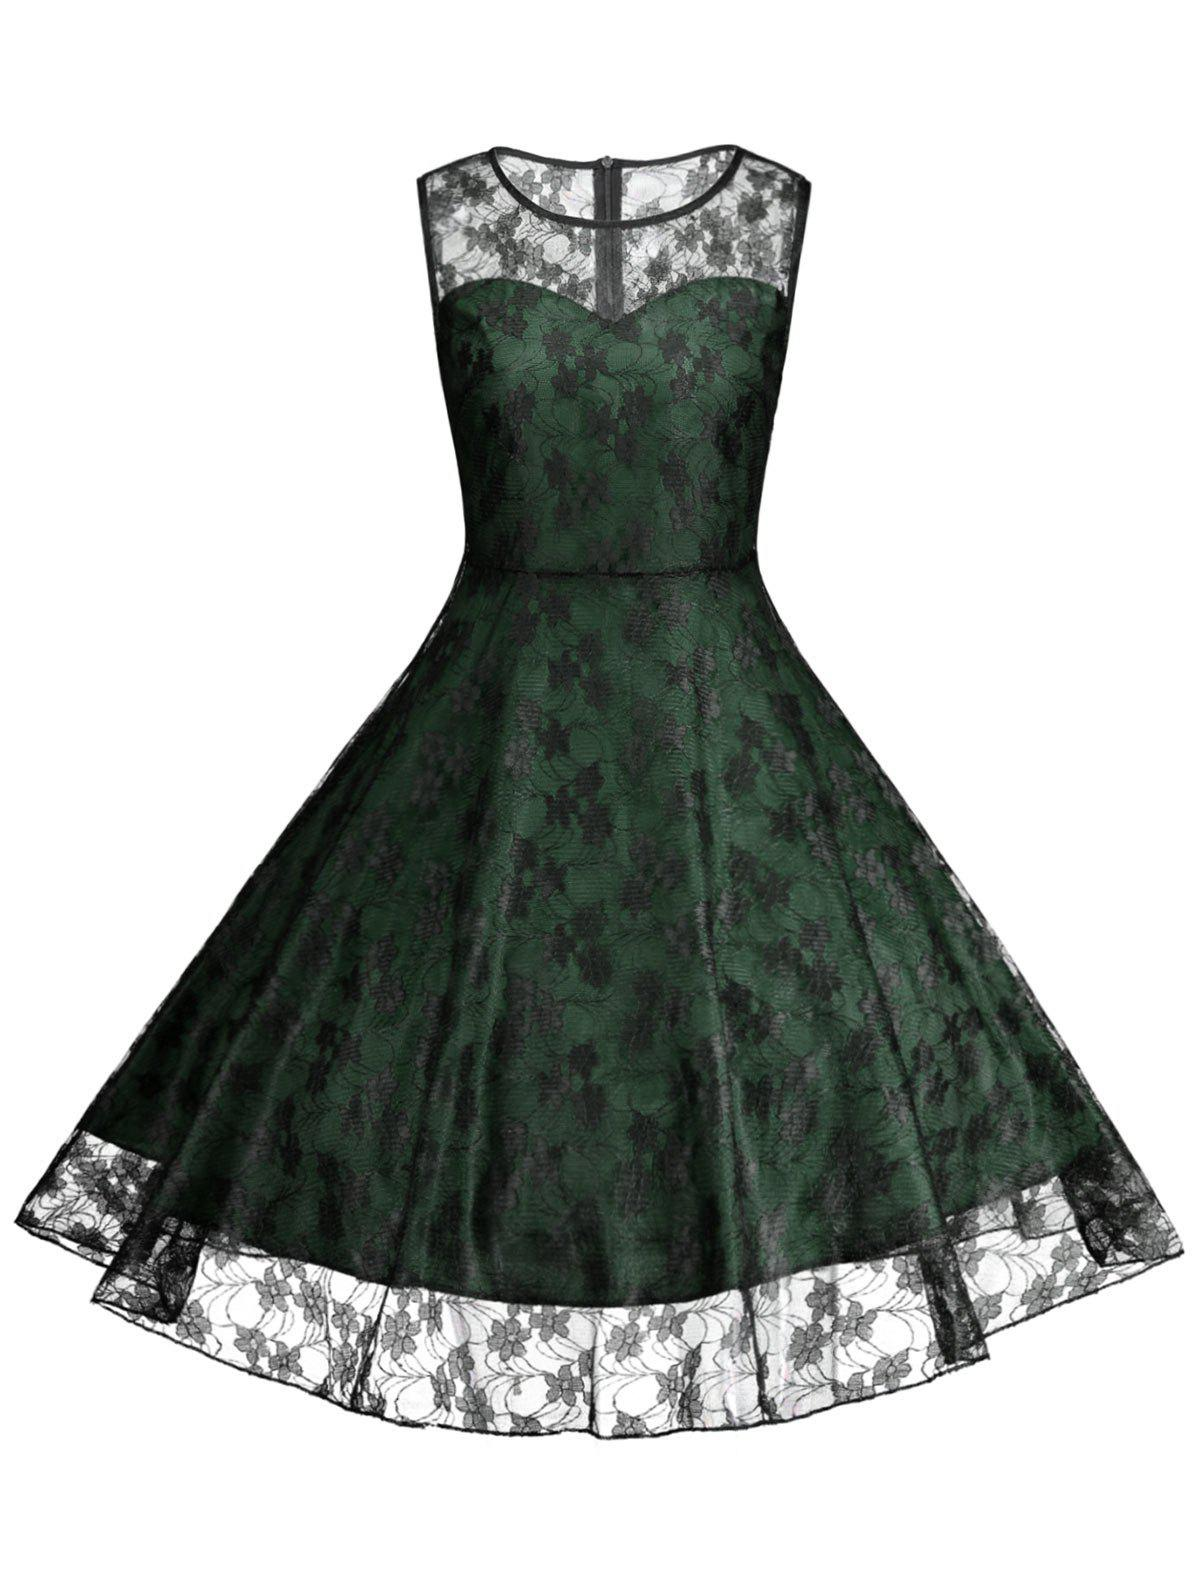 Plus Size Lace Cocktail Formal Party DressWOMEN<br><br>Size: 2XL; Color: GREEN; Style: Vintage; Material: Lace,Polyester; Silhouette: A-Line; Dresses Length: Knee-Length; Neckline: Round Collar; Sleeve Length: Sleeveless; Waist: High Waisted; Embellishment: Lace; Pattern Type: Floral; With Belt: No; Season: Summer; Weight: 0.2400kg; Package Contents: 1 x Dress;